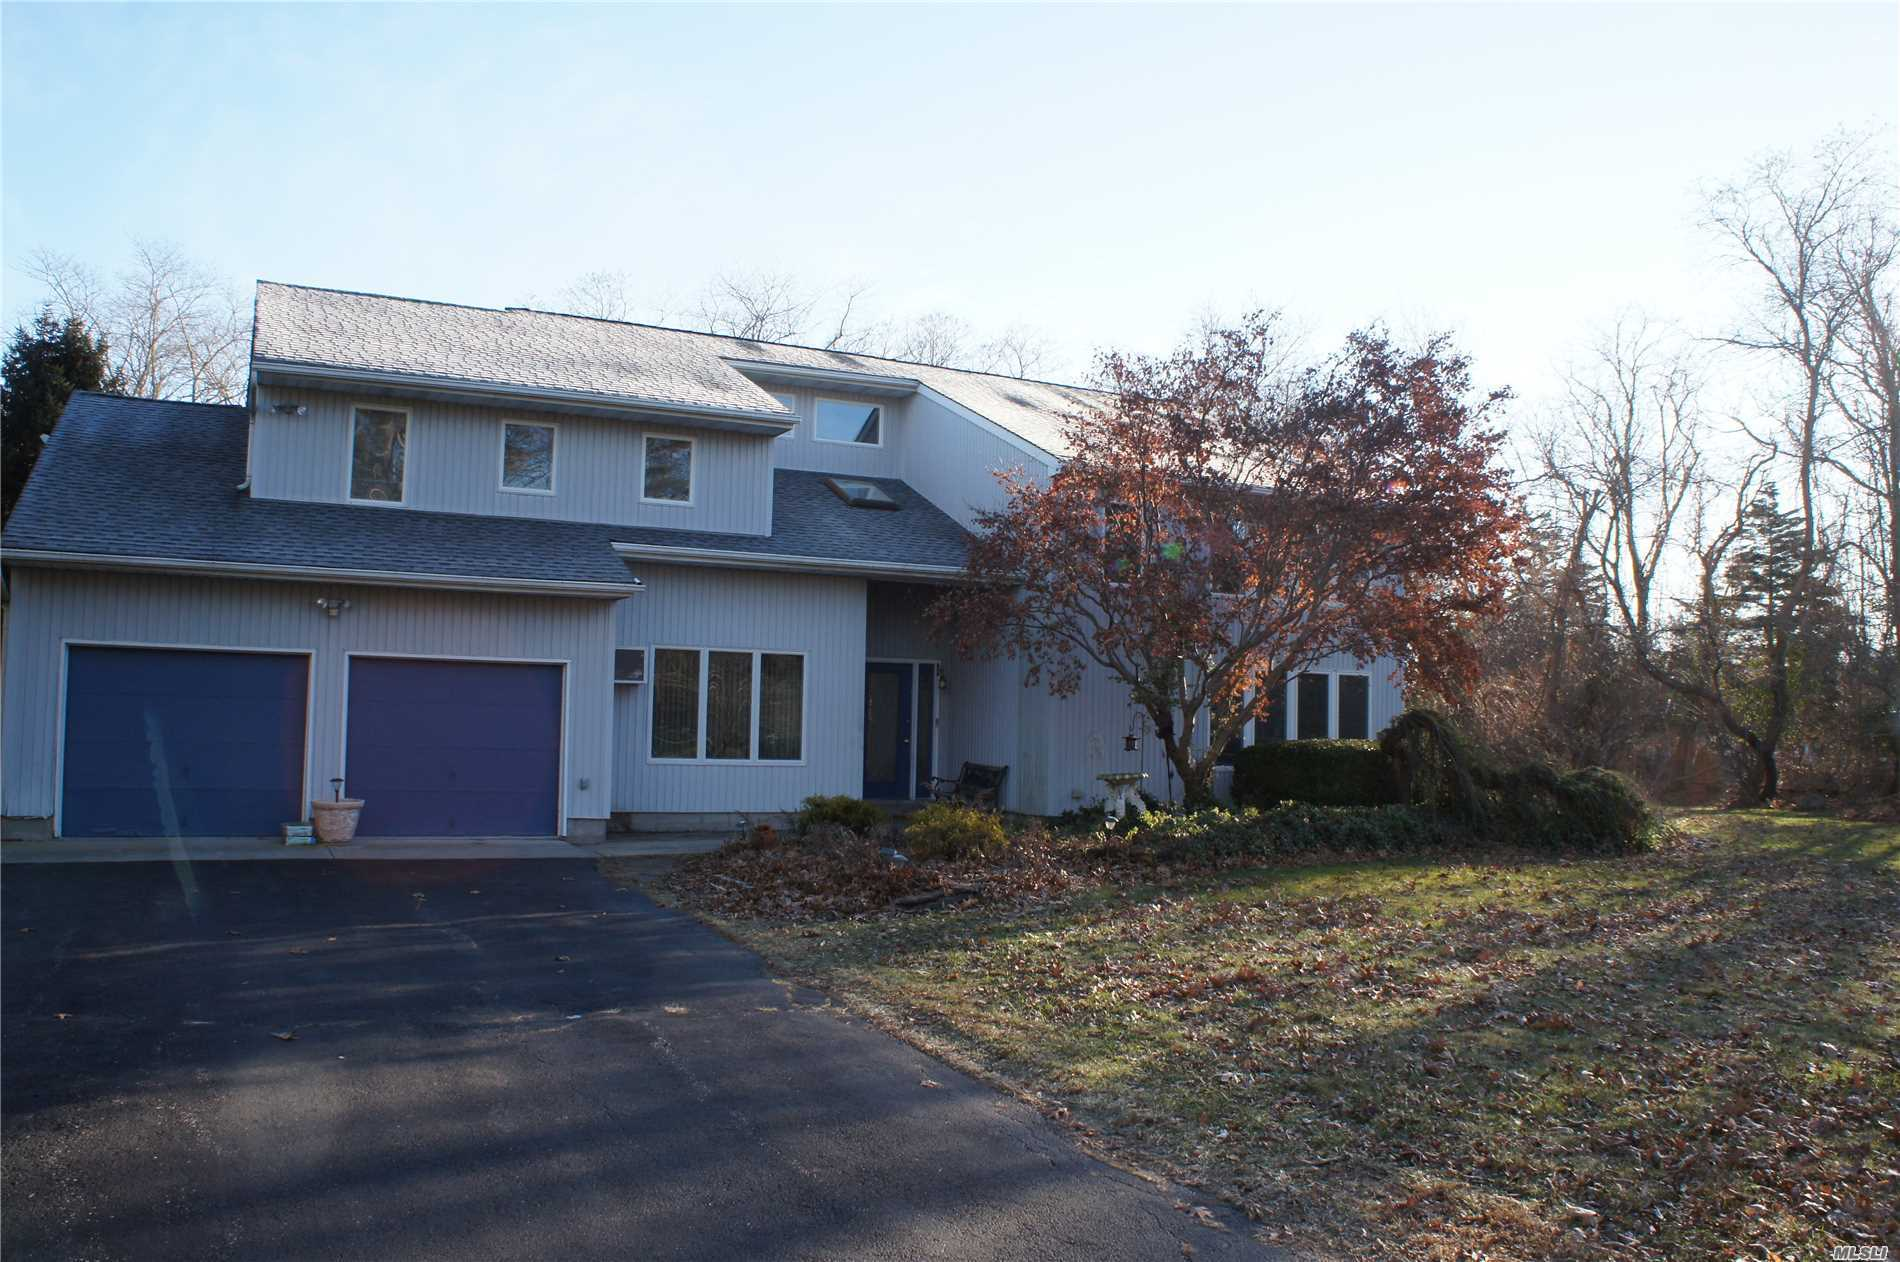 Incredible Custom Built Contemporary Style Home On 1.14 Private And Secluded Acres. 3600 Square Feet Of Living Space, Great For Entertaining. Formal Living And Dining Rooms, Den With Fireplace, Eat In Kitchen That Leads To Sundeck And In Ground Pool. Second Floor- Master Suite, 3 Bedrooms And Full Bath.